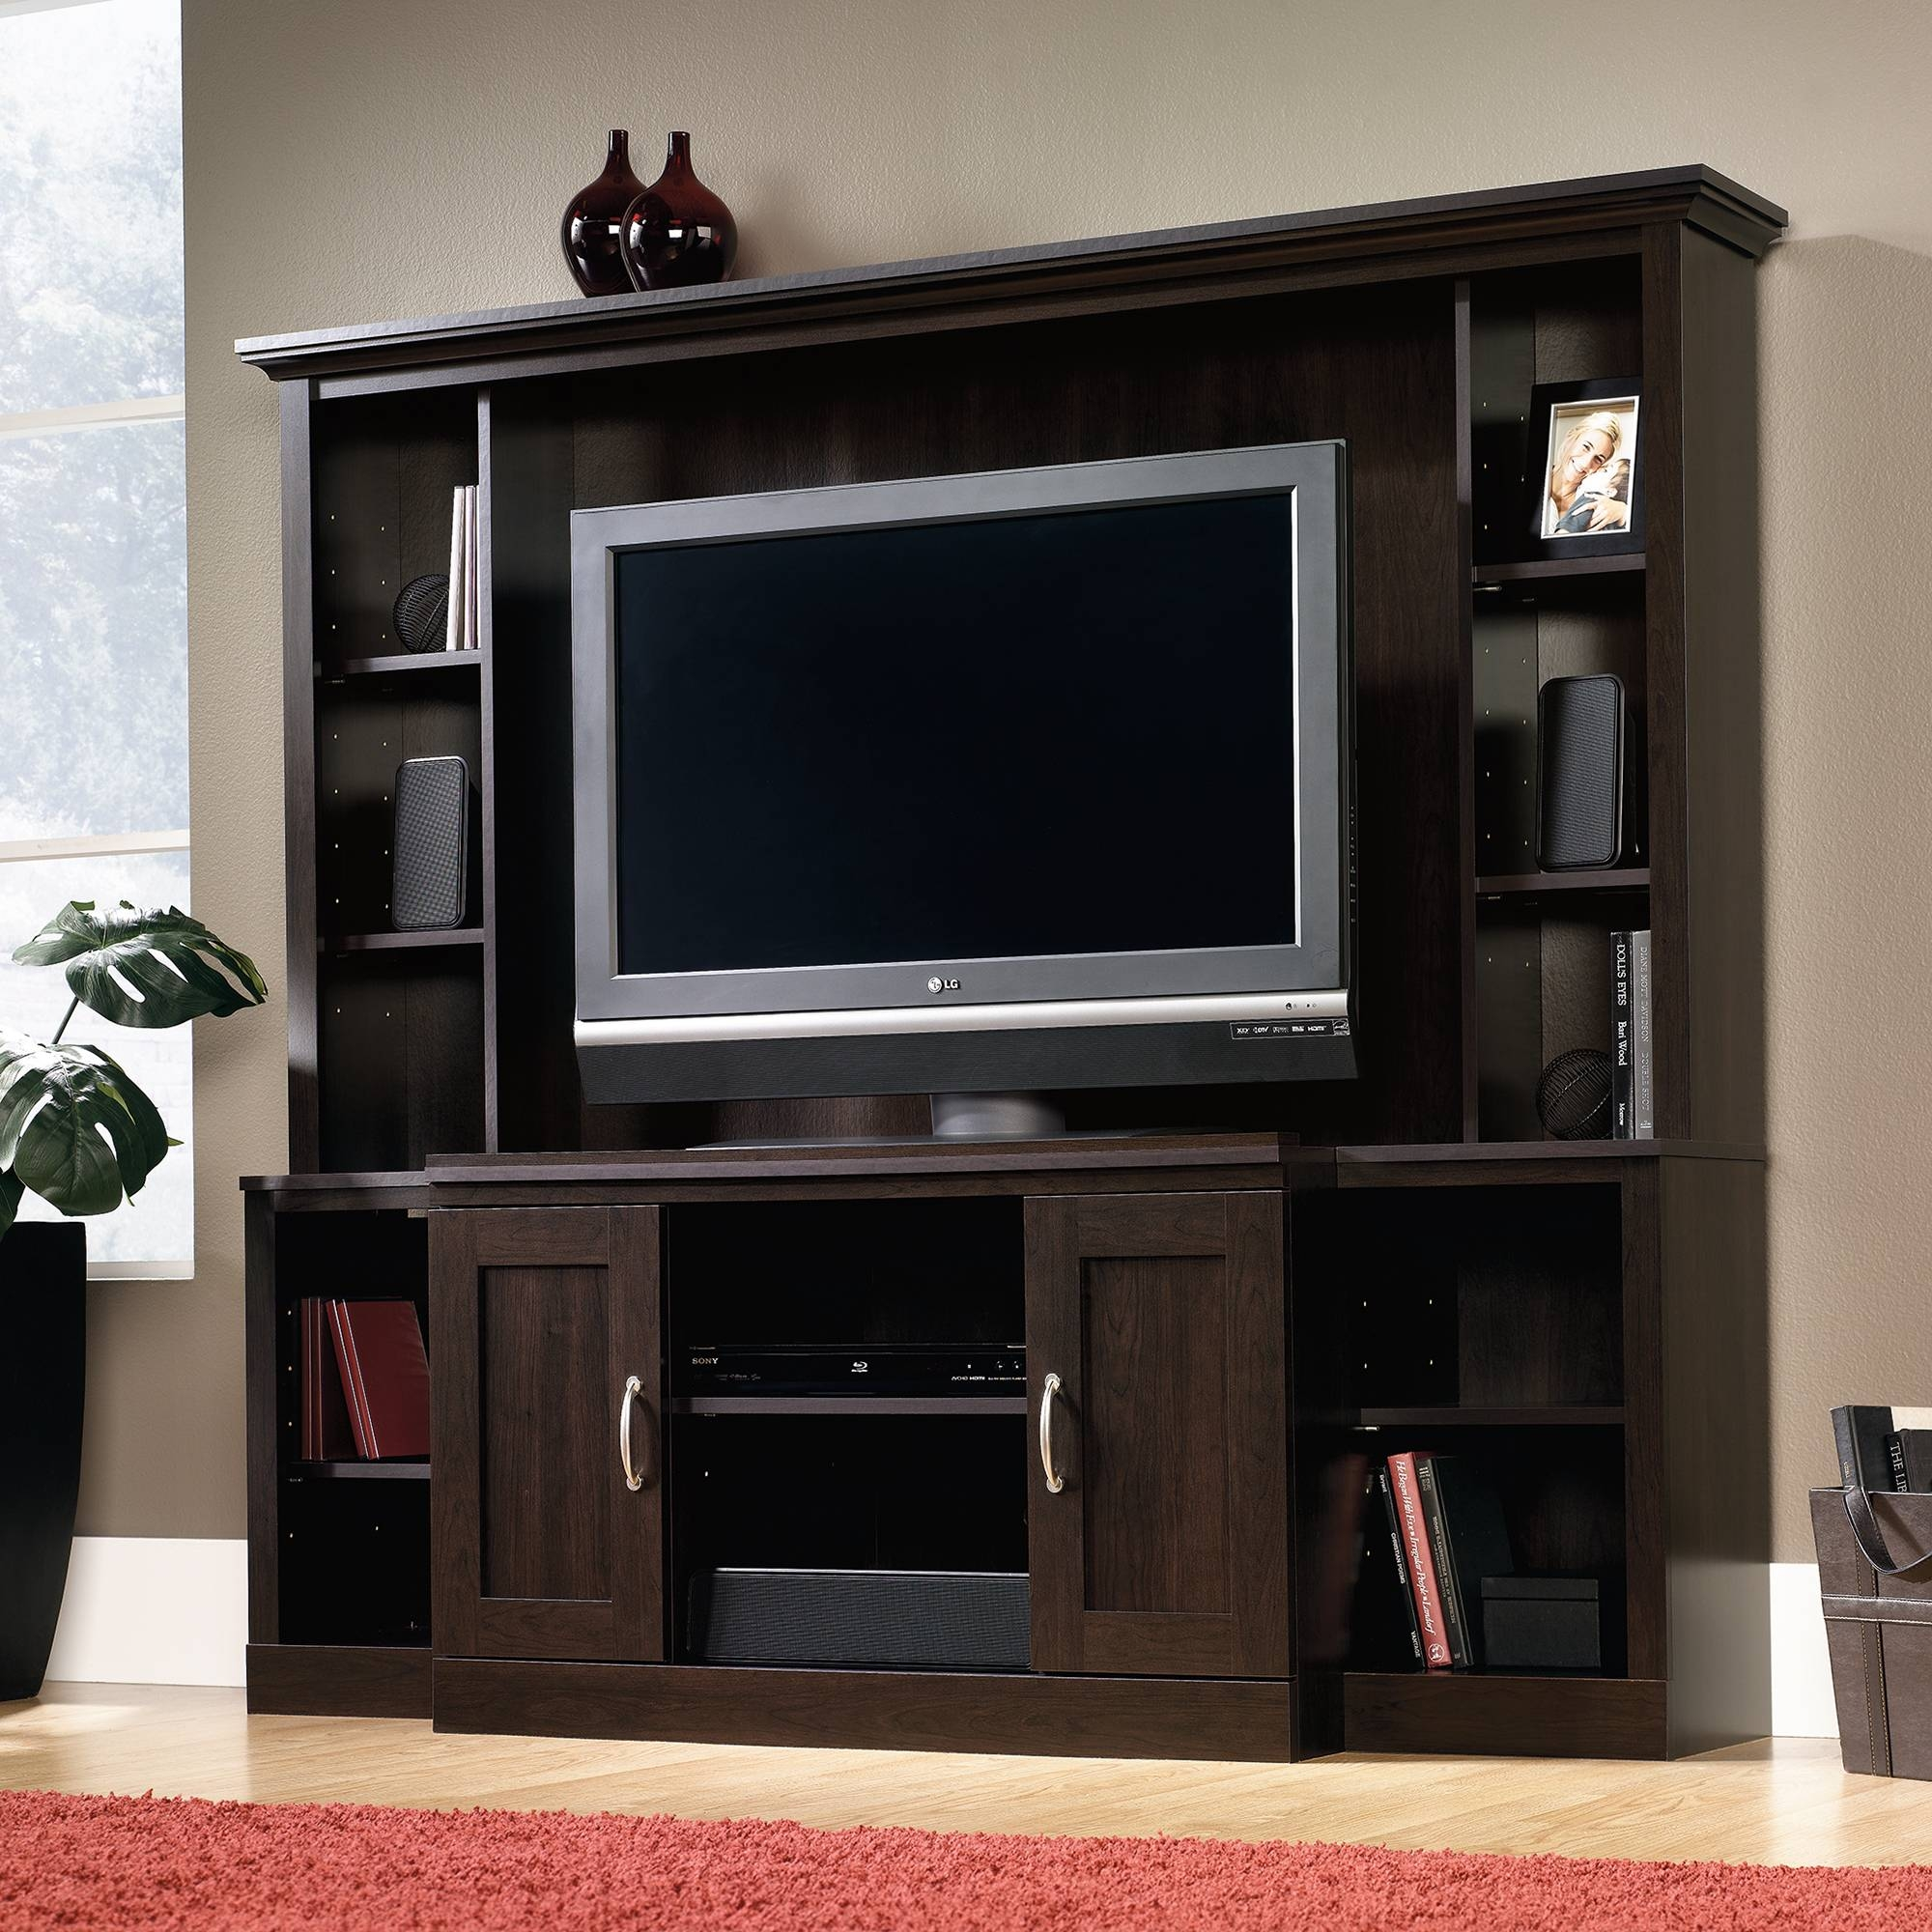 Sauder Select | Entertainment Center | 403932 | Sauder throughout Entertainment Center Tv Stands (Image 6 of 15)